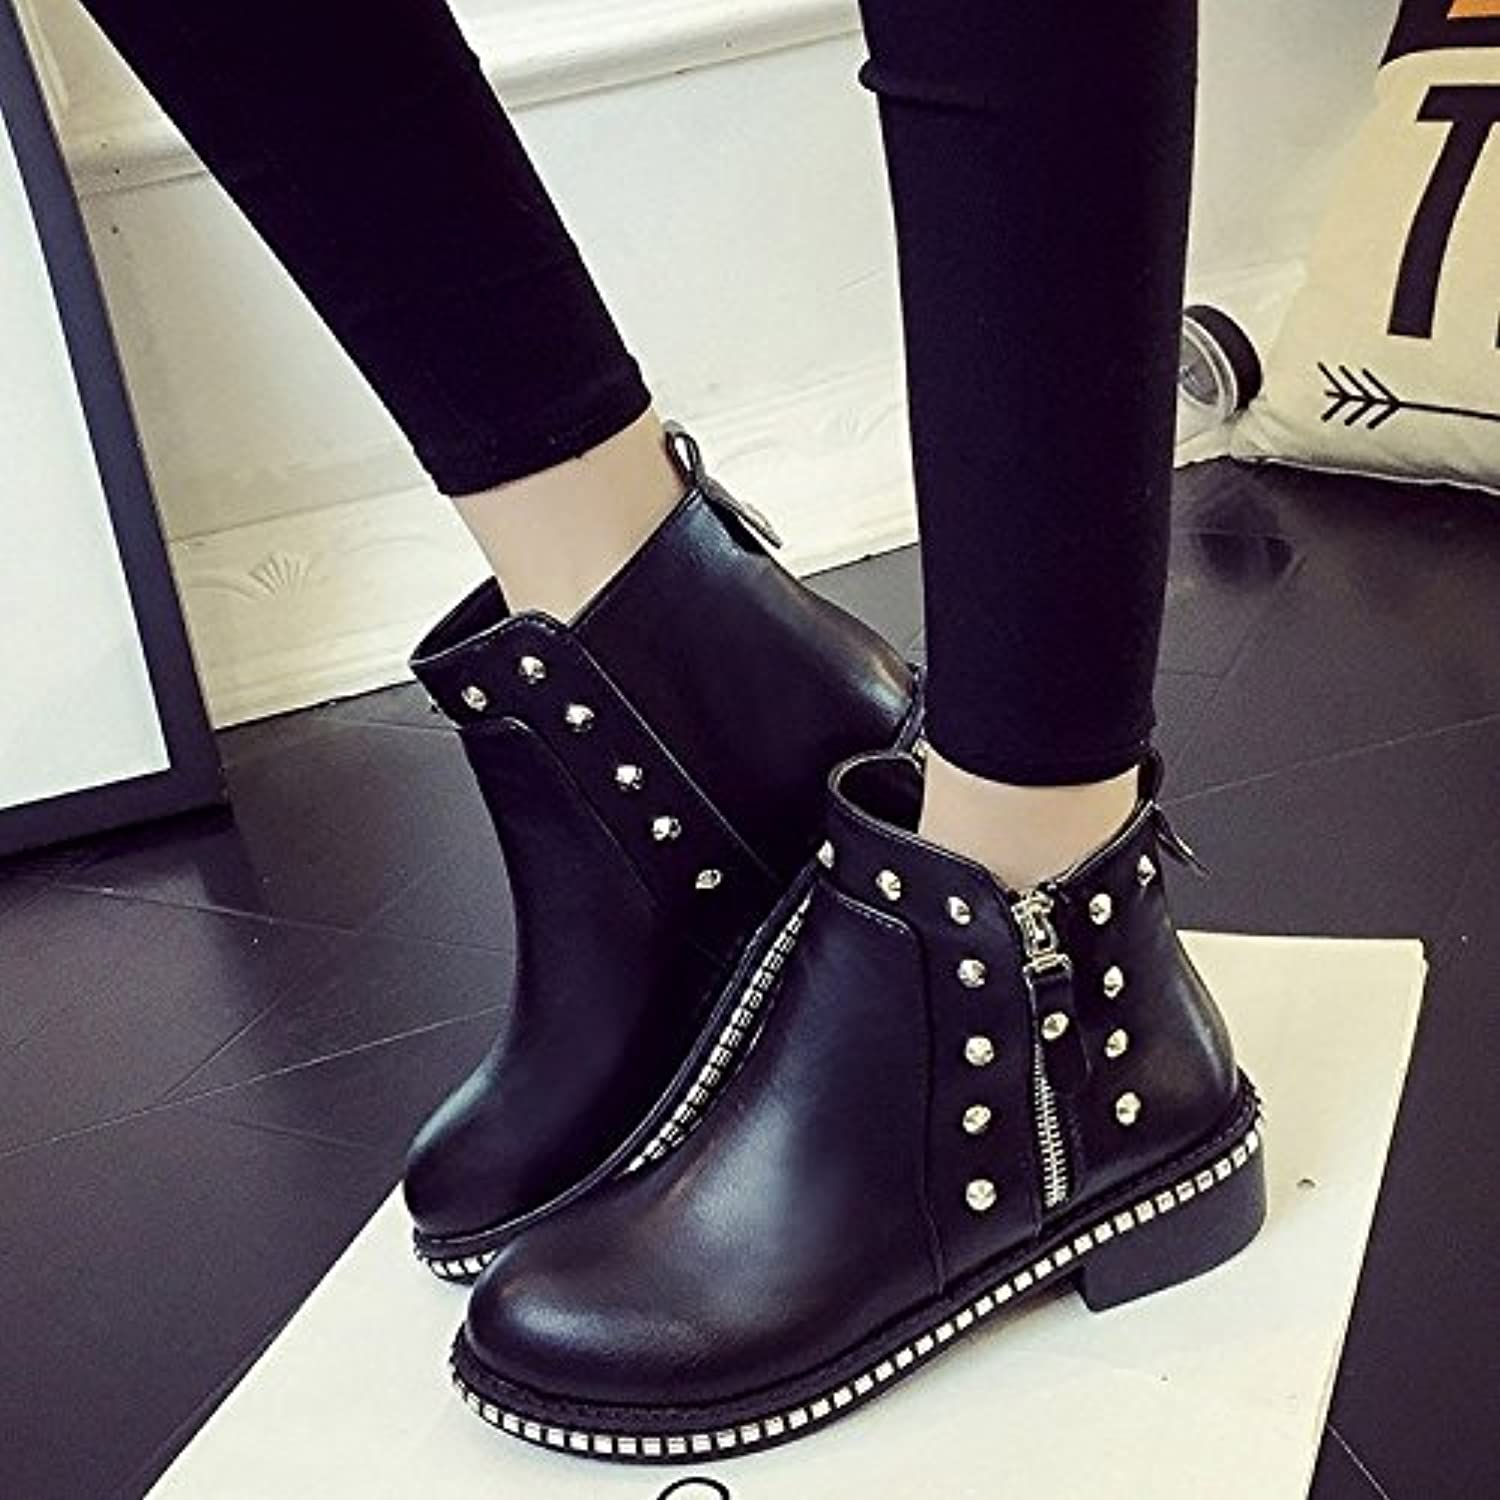 WYMBS Women's shoes Low-Heeled Autumn Winter Rivet Rhinestone Short Tube Rough with Martin Boots